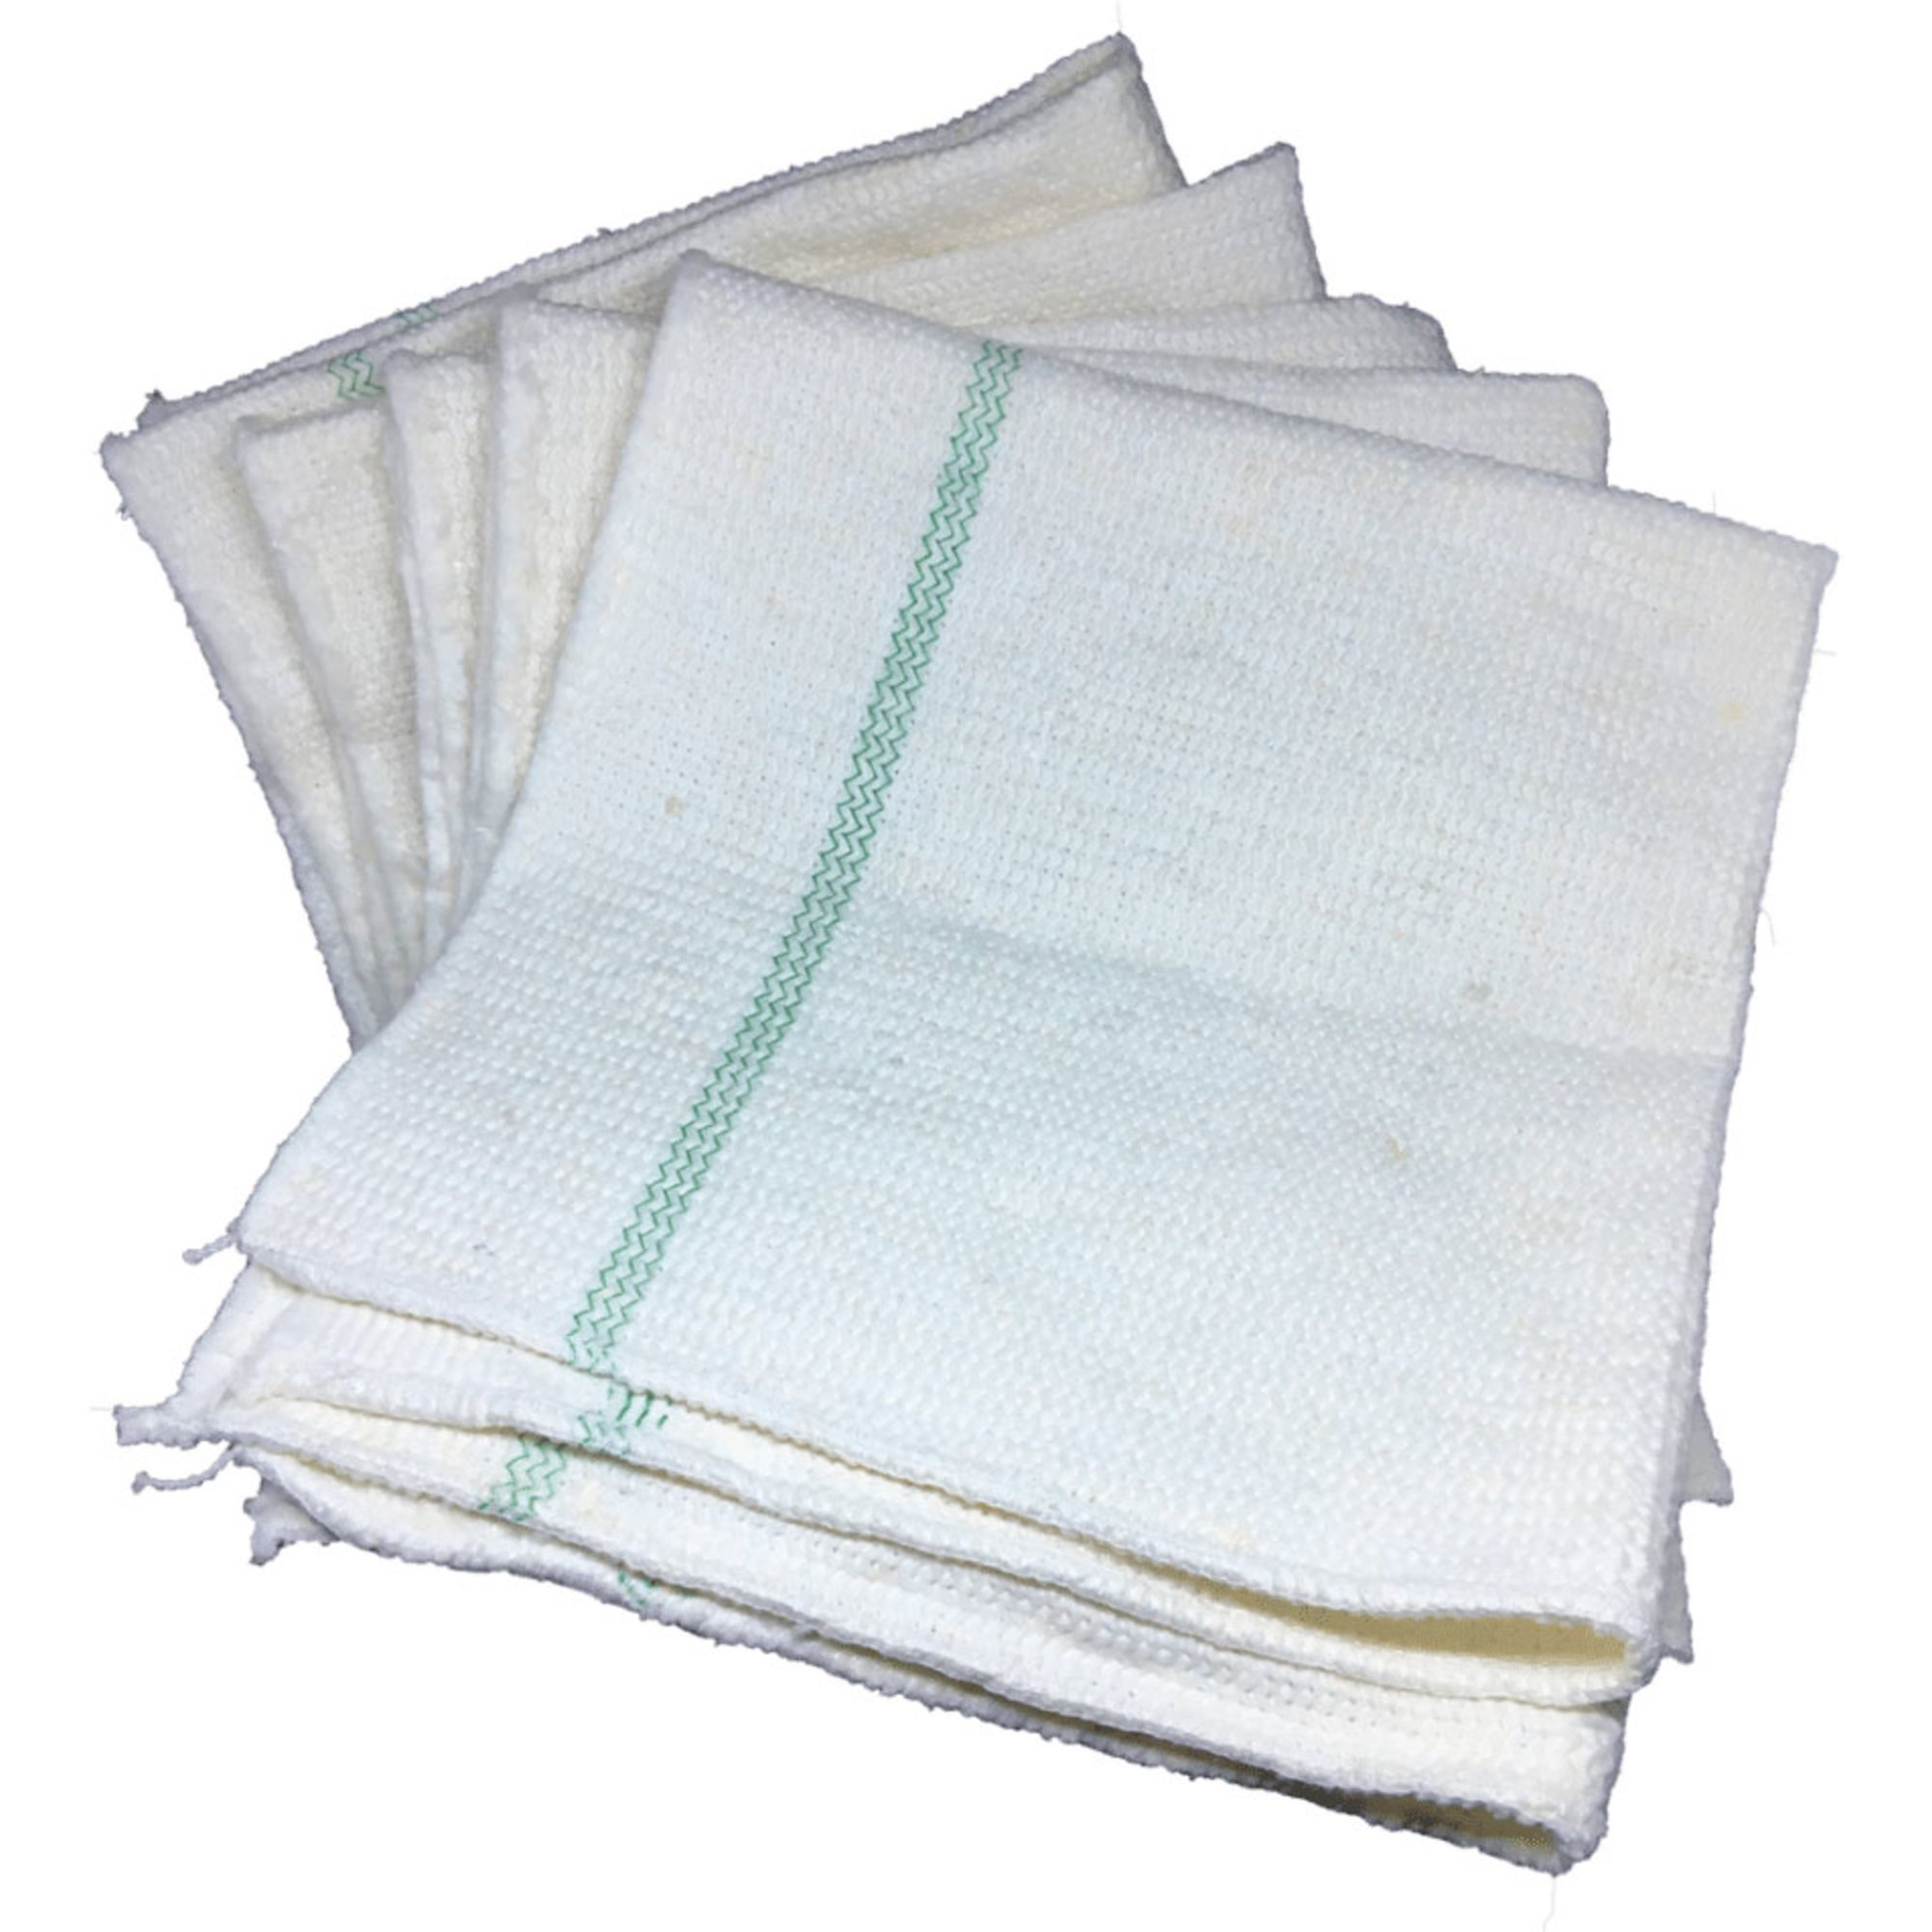 Ofyr Grill Cloth 5-pack